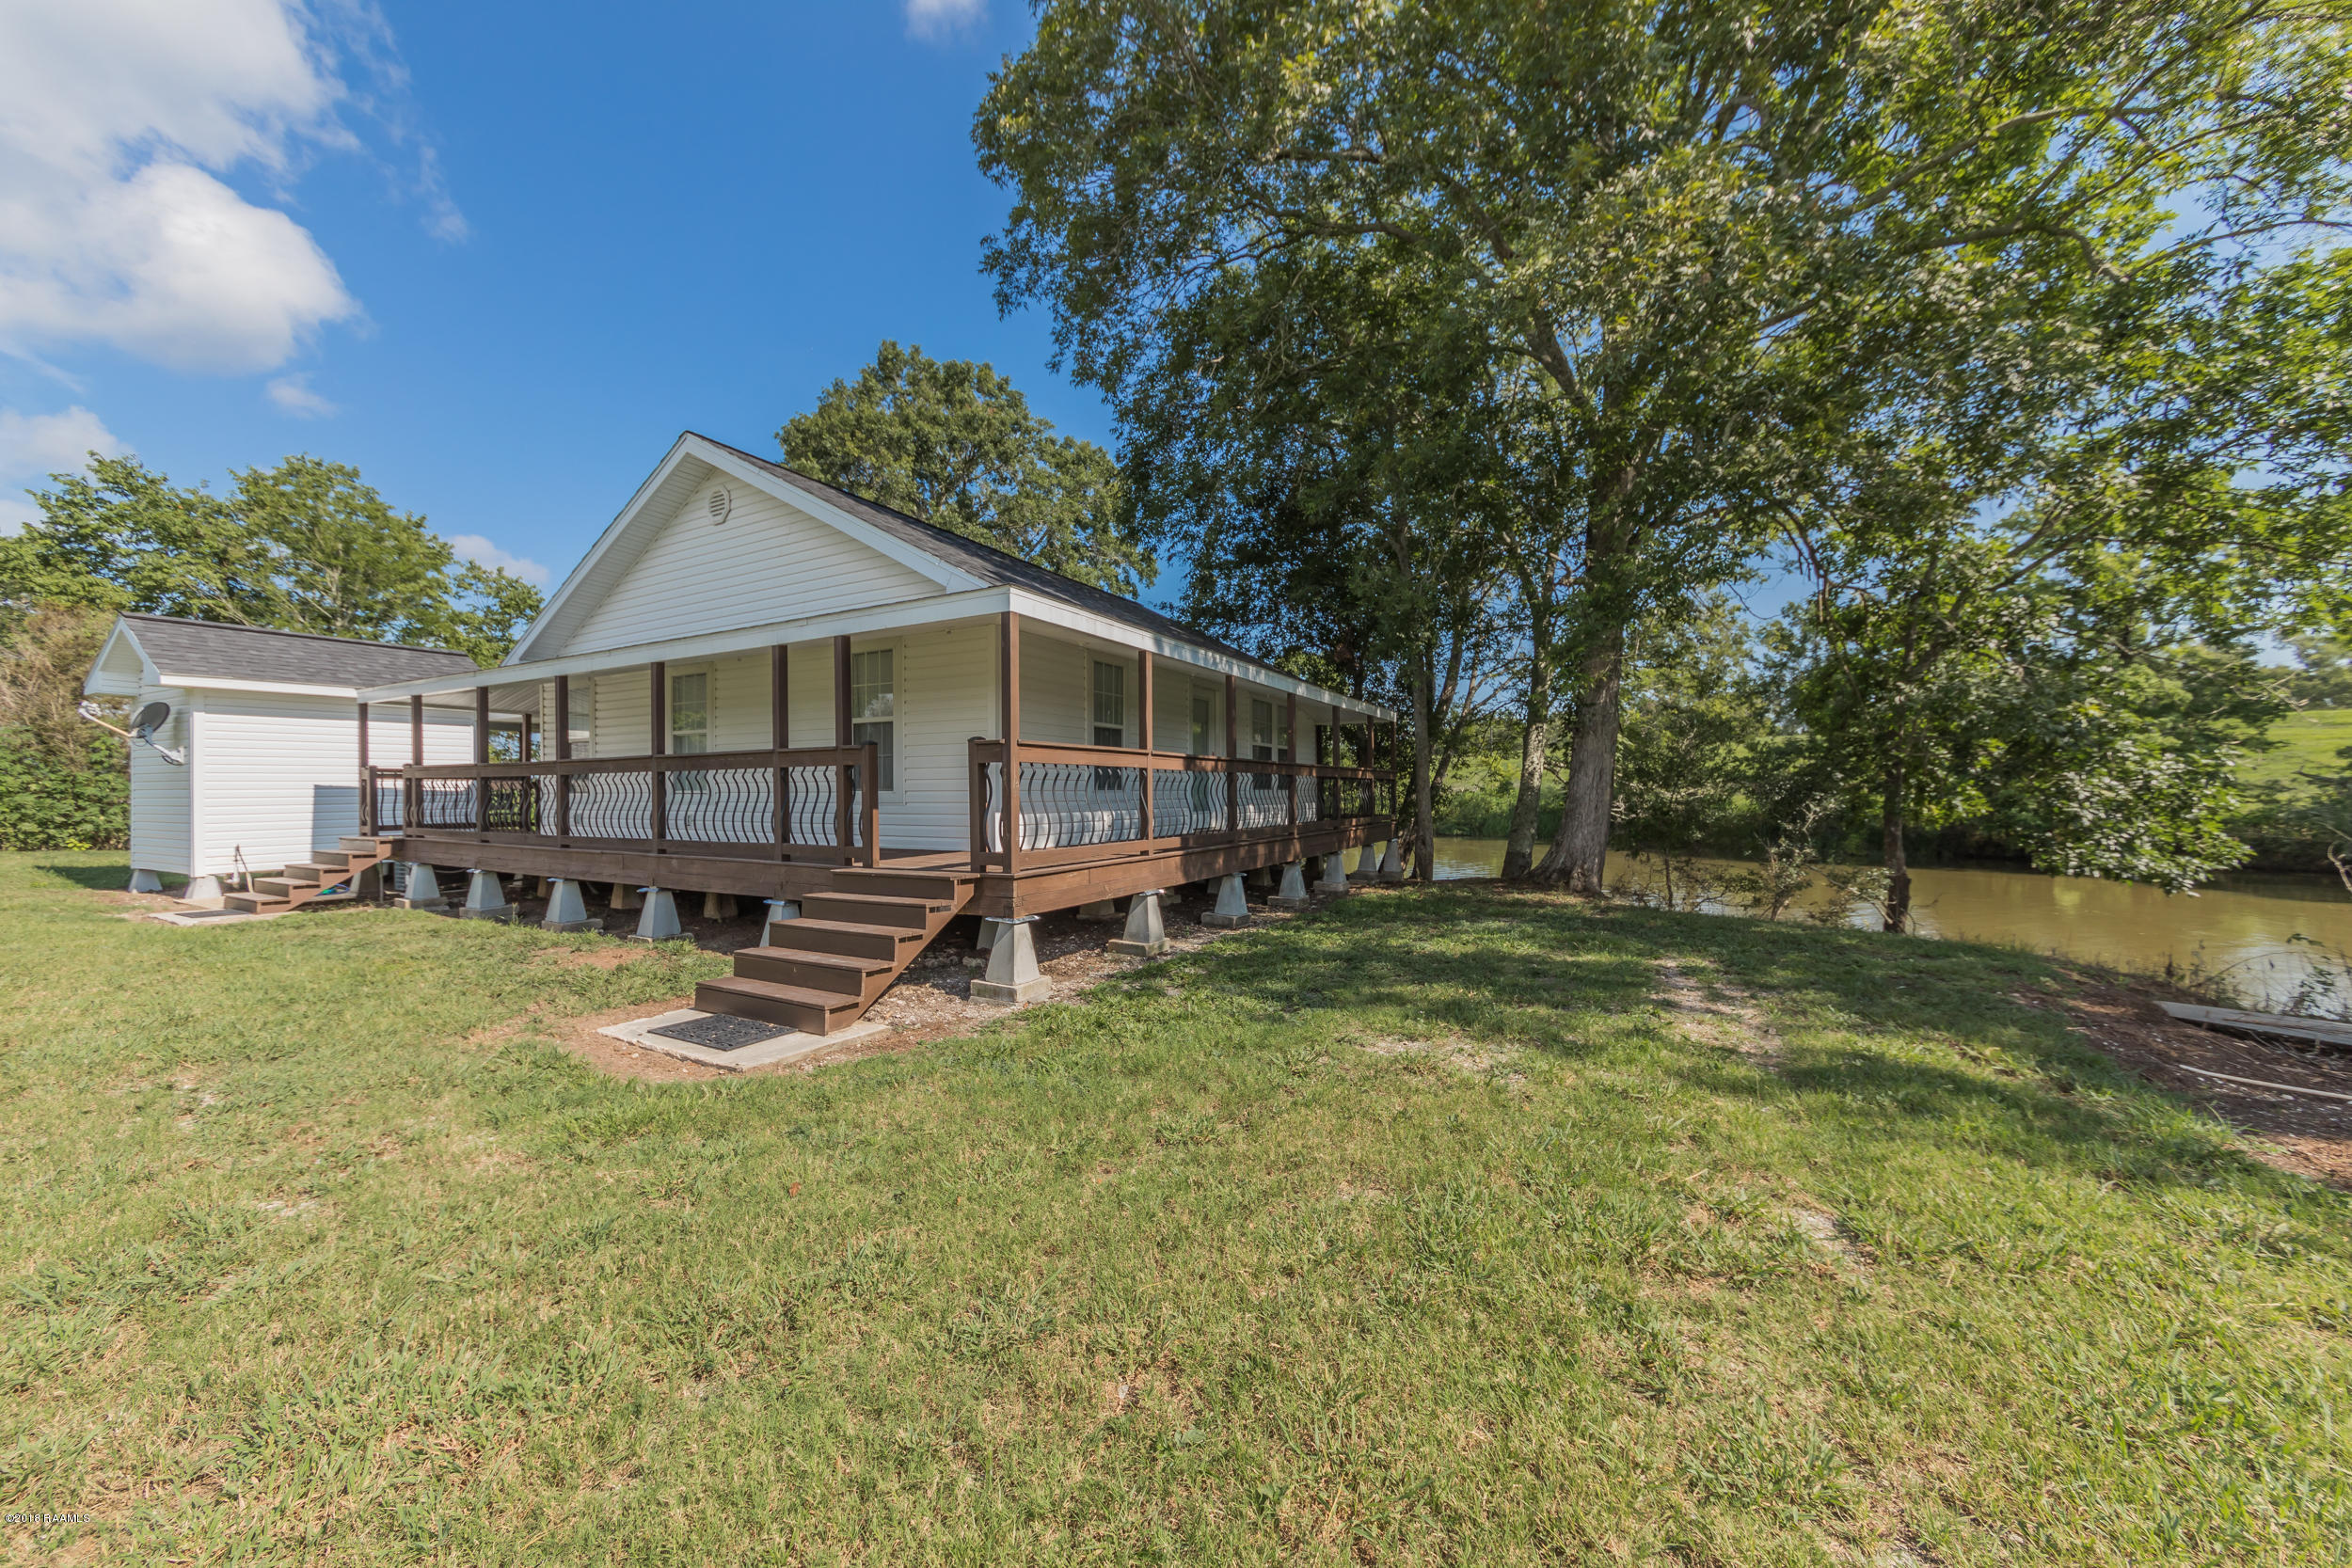 1185 Wade O Martin Road, St. Martinville, LA 70582 Photo #50